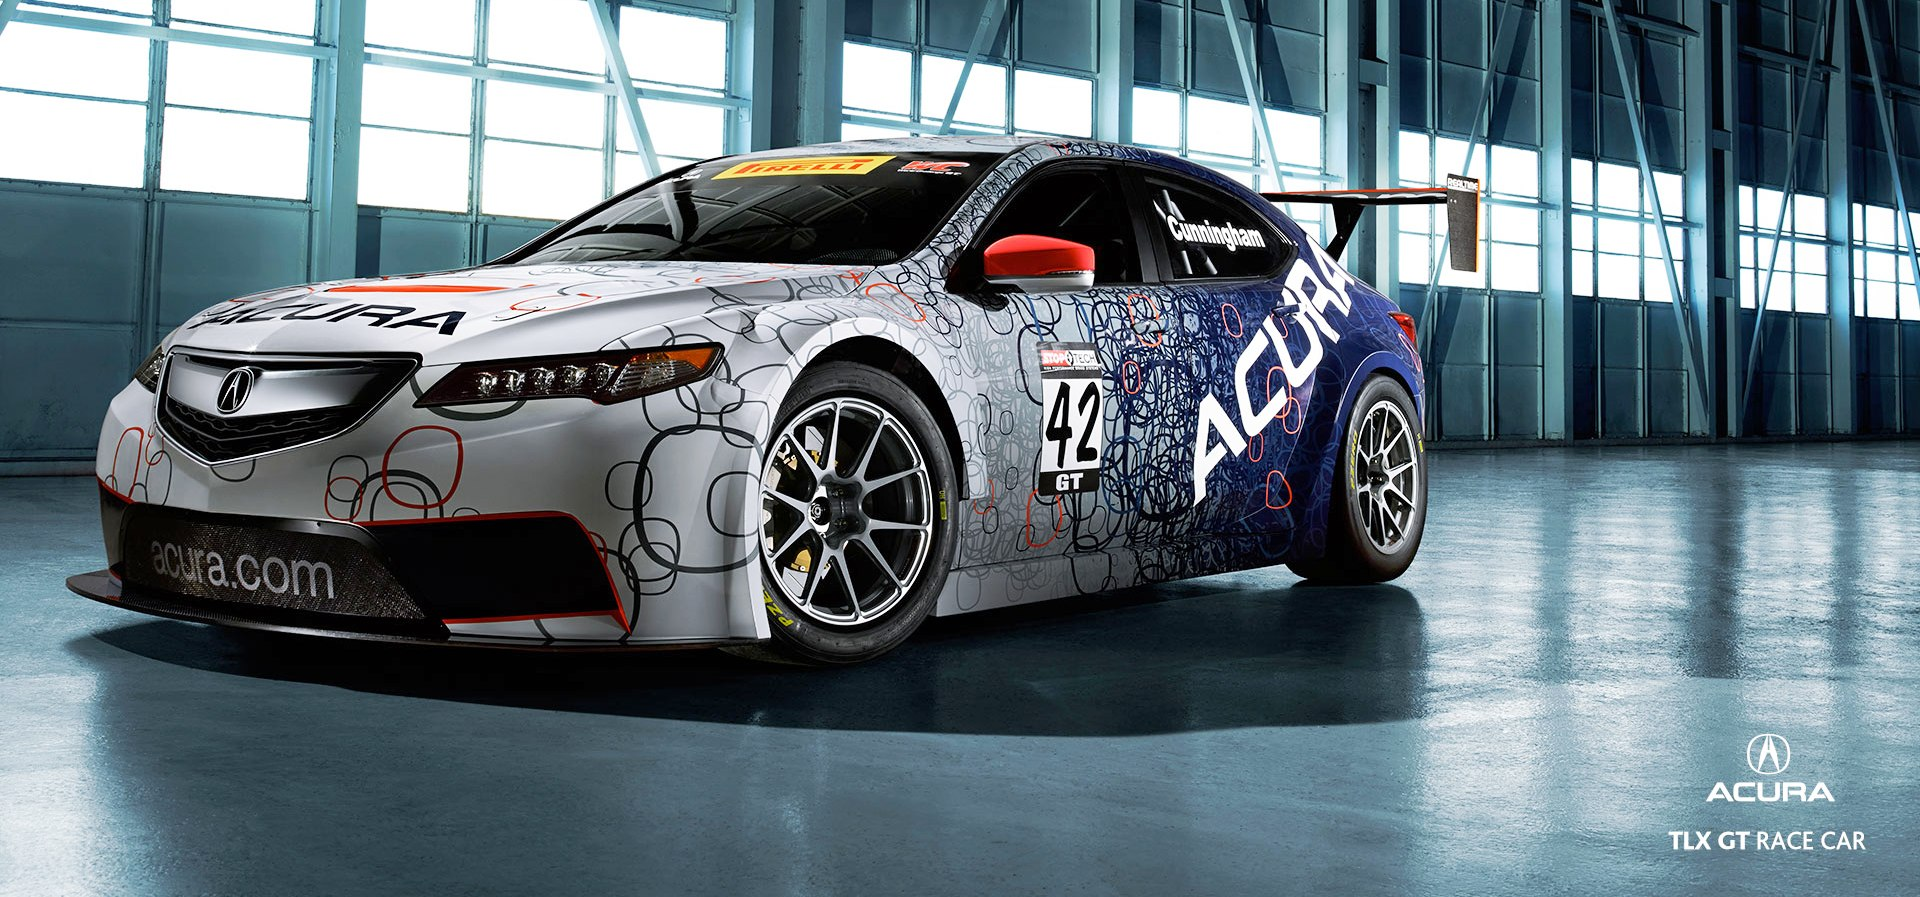 Acura TLX GT Racecar Boosts 2015 TLX Launch with 500Hp Twin-Turbo SH-AWD